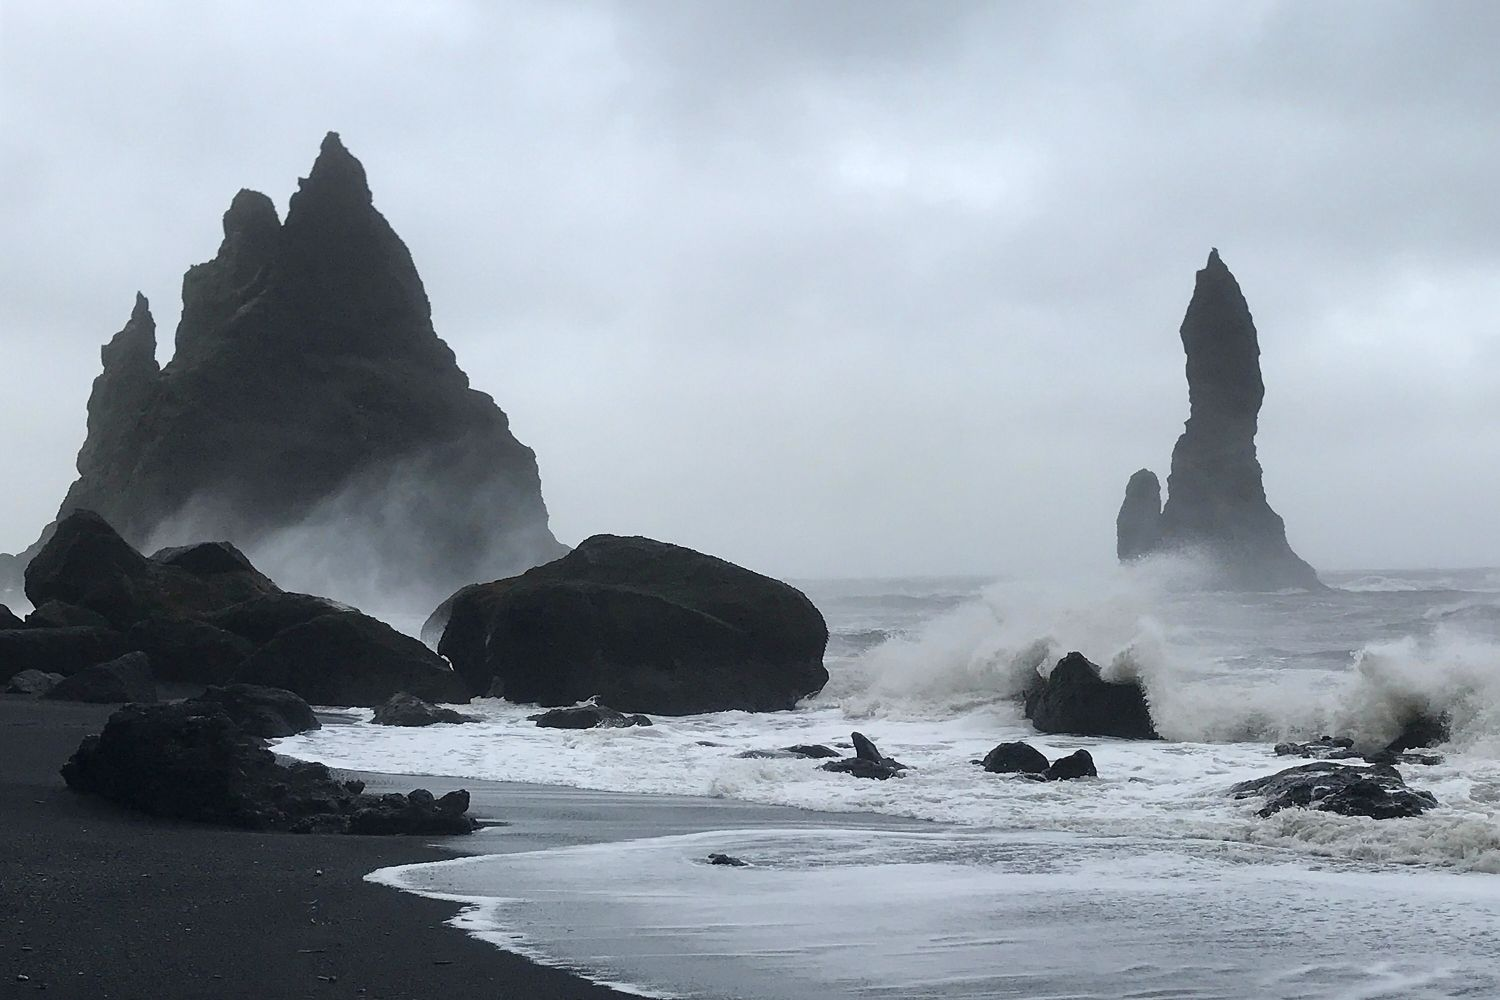 Reynisdrangar Basalt Sea Stacks at Vik Iceland